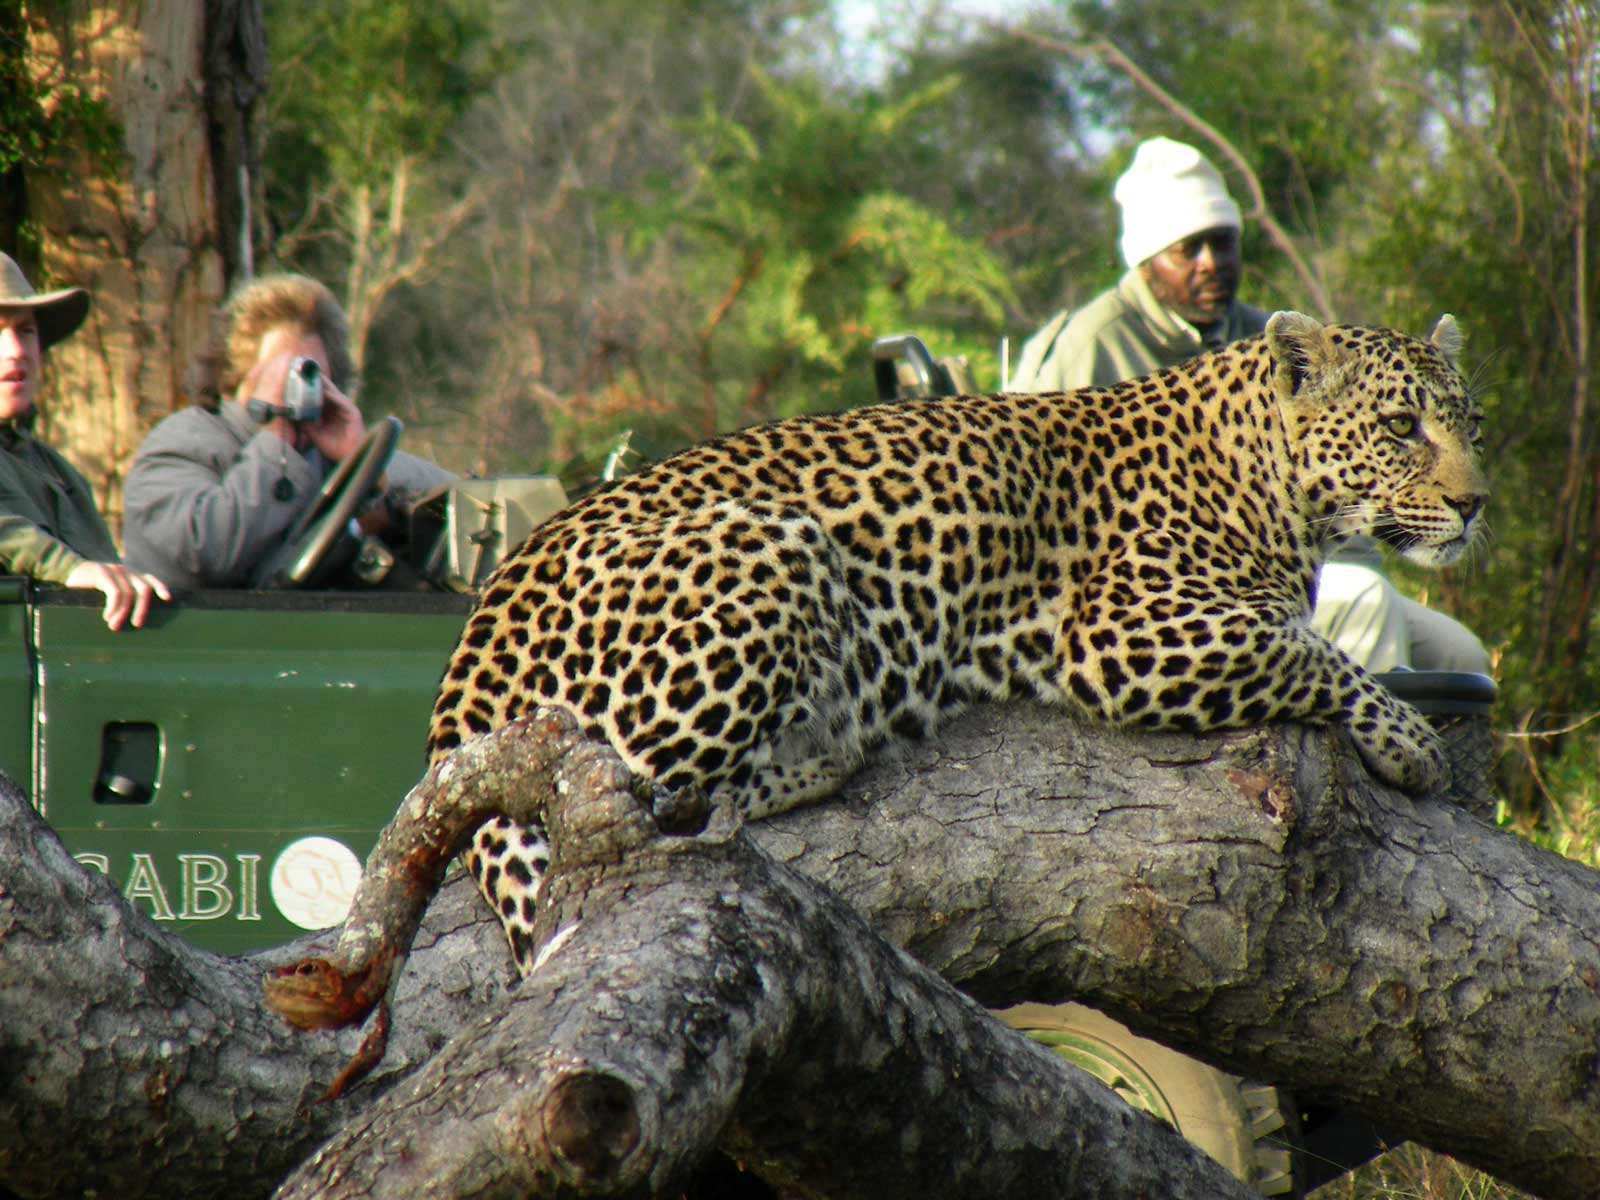 Leopard with tourists in jeep in background